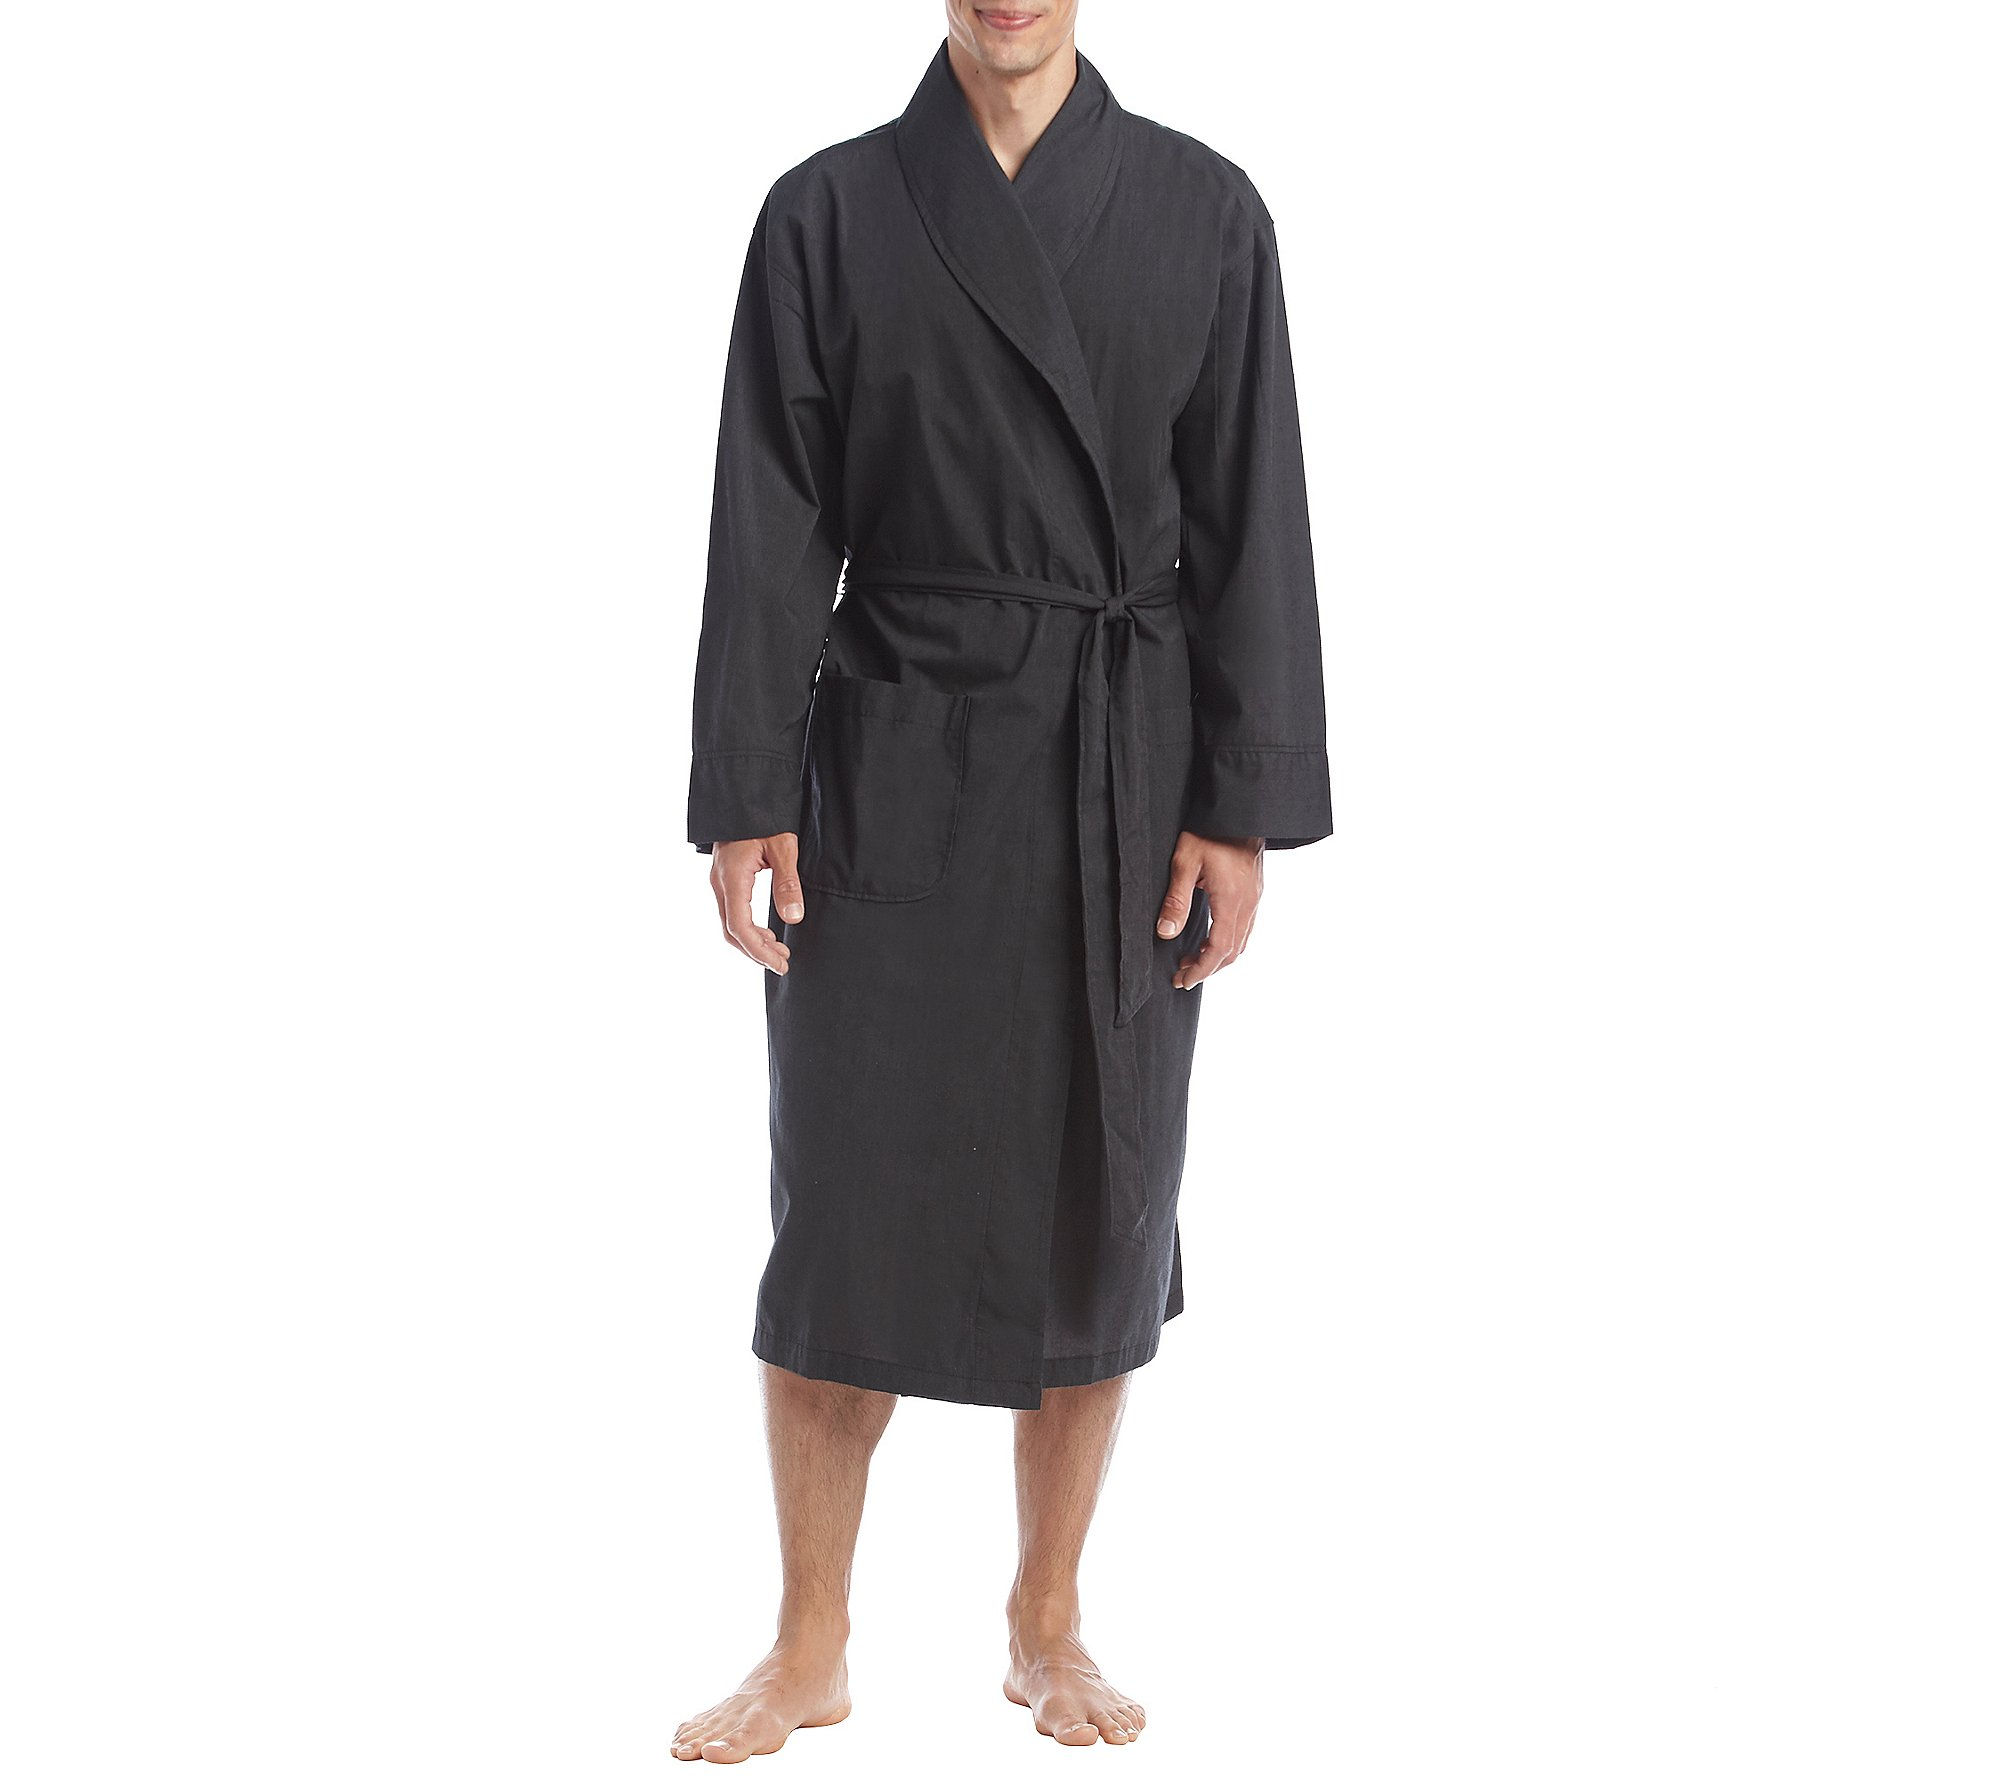 Hanes Men's Tall Size Woven Shawl Collar Robe, black Extra Large/2X-Large